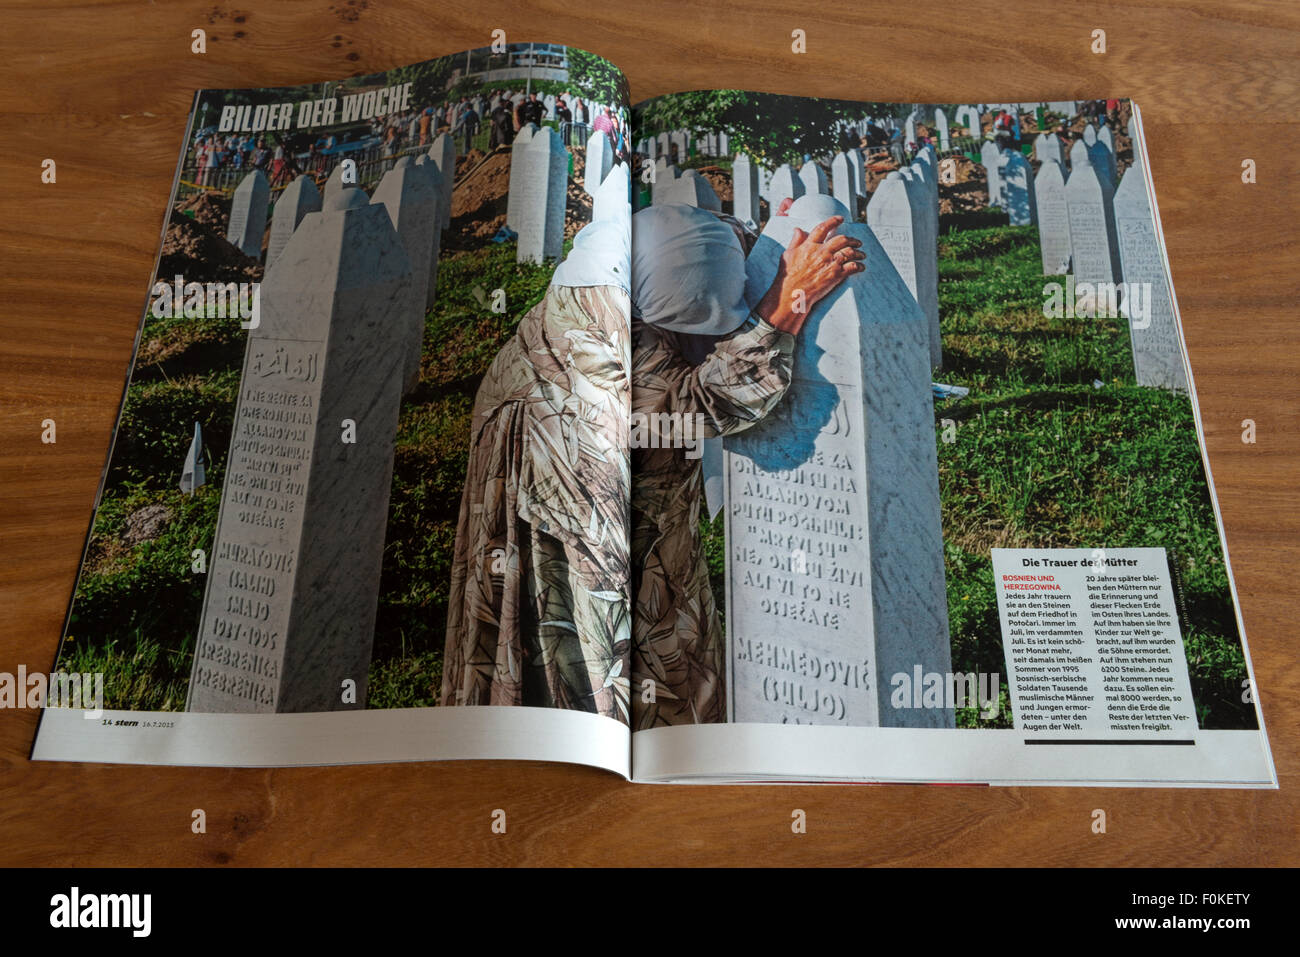 Stern magazine 16.7.2015 article of 20 years anniversary of the war in Bosnia - Stock Image